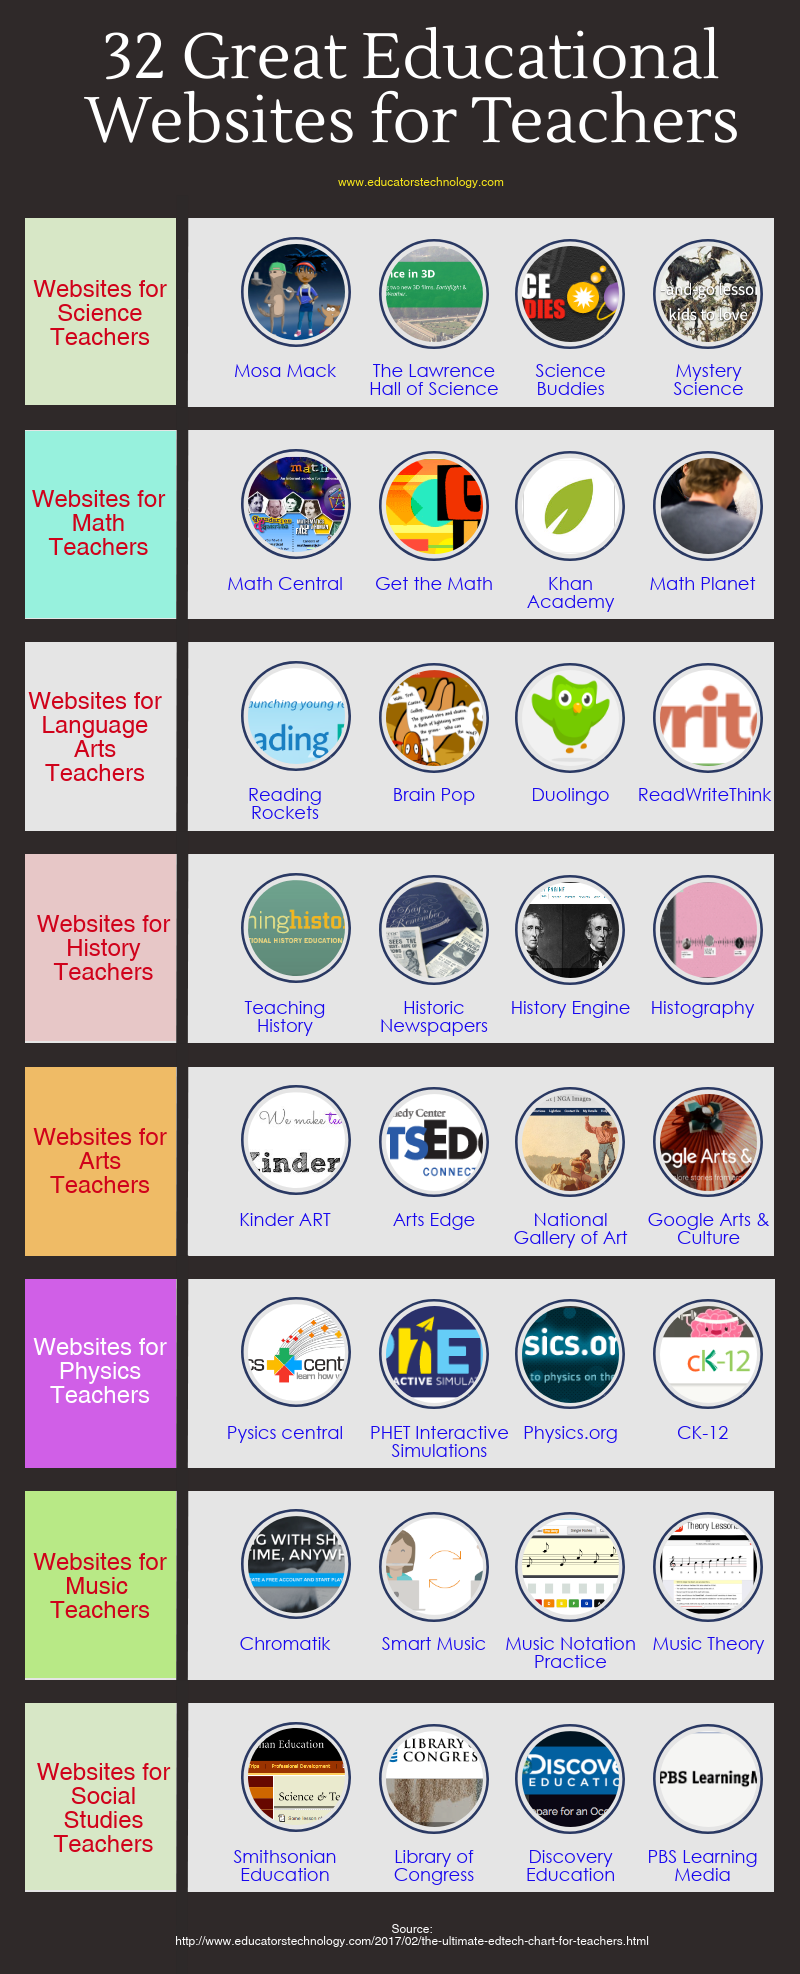 A Collection of Some of The Best Tools and Websites for Teachers